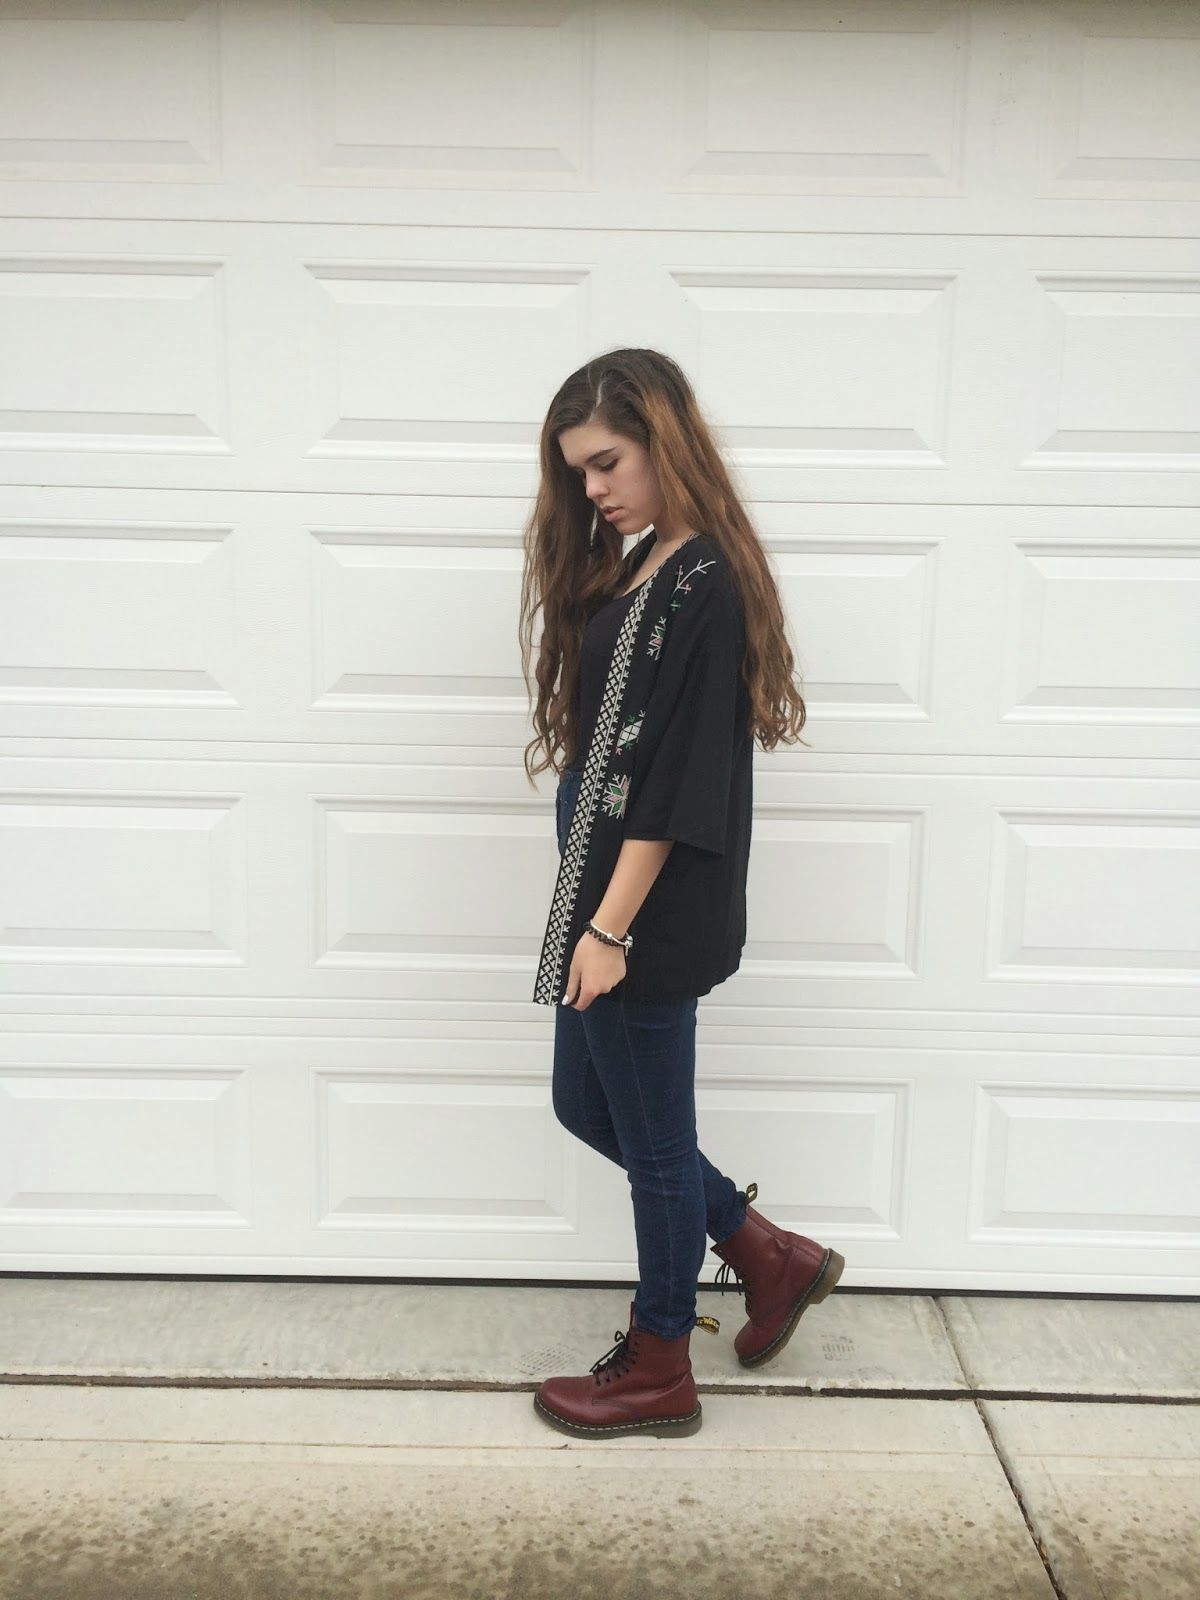 Red Doc Martens, Doc Martens Outfit, Urban Outfitters Shoes, Street Outfit,  Hipster Fashion, College Fashion, Fall Winter Outfits, Fall Fashions,  Freshman